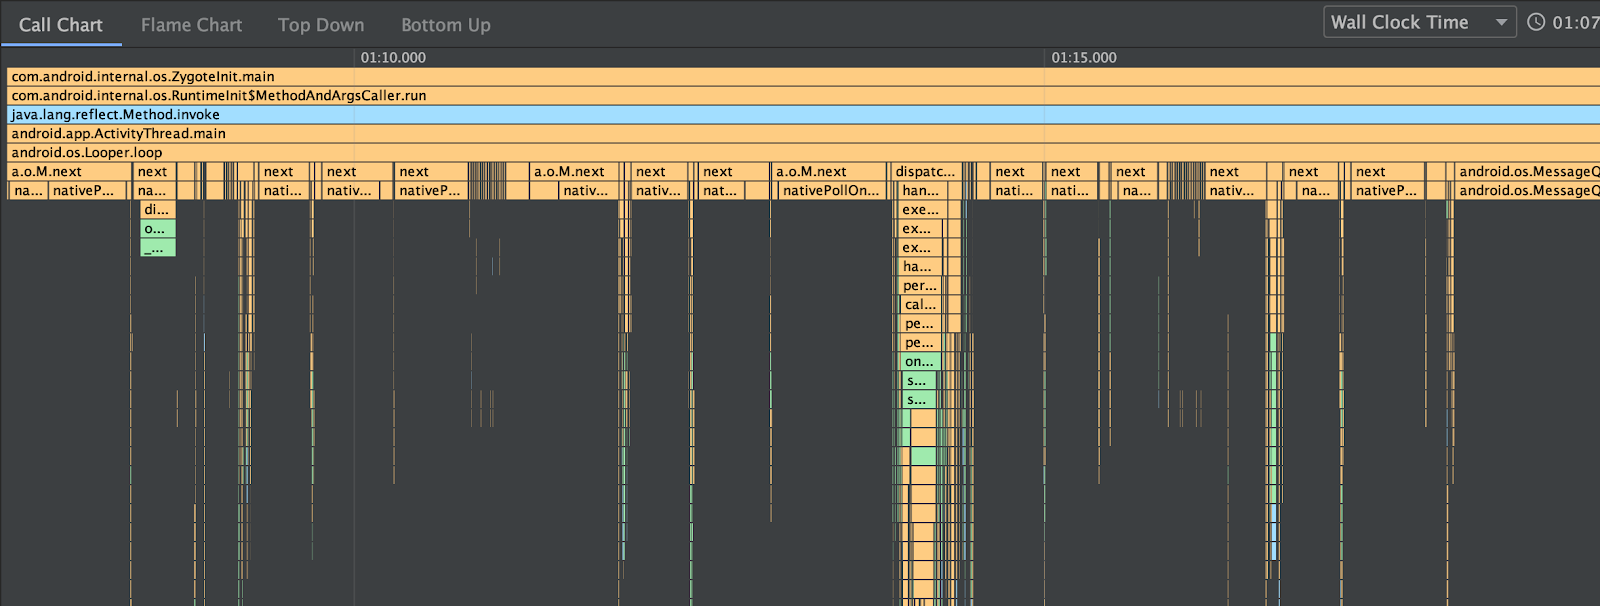 A Call Chart showing the code in the Freetrade app